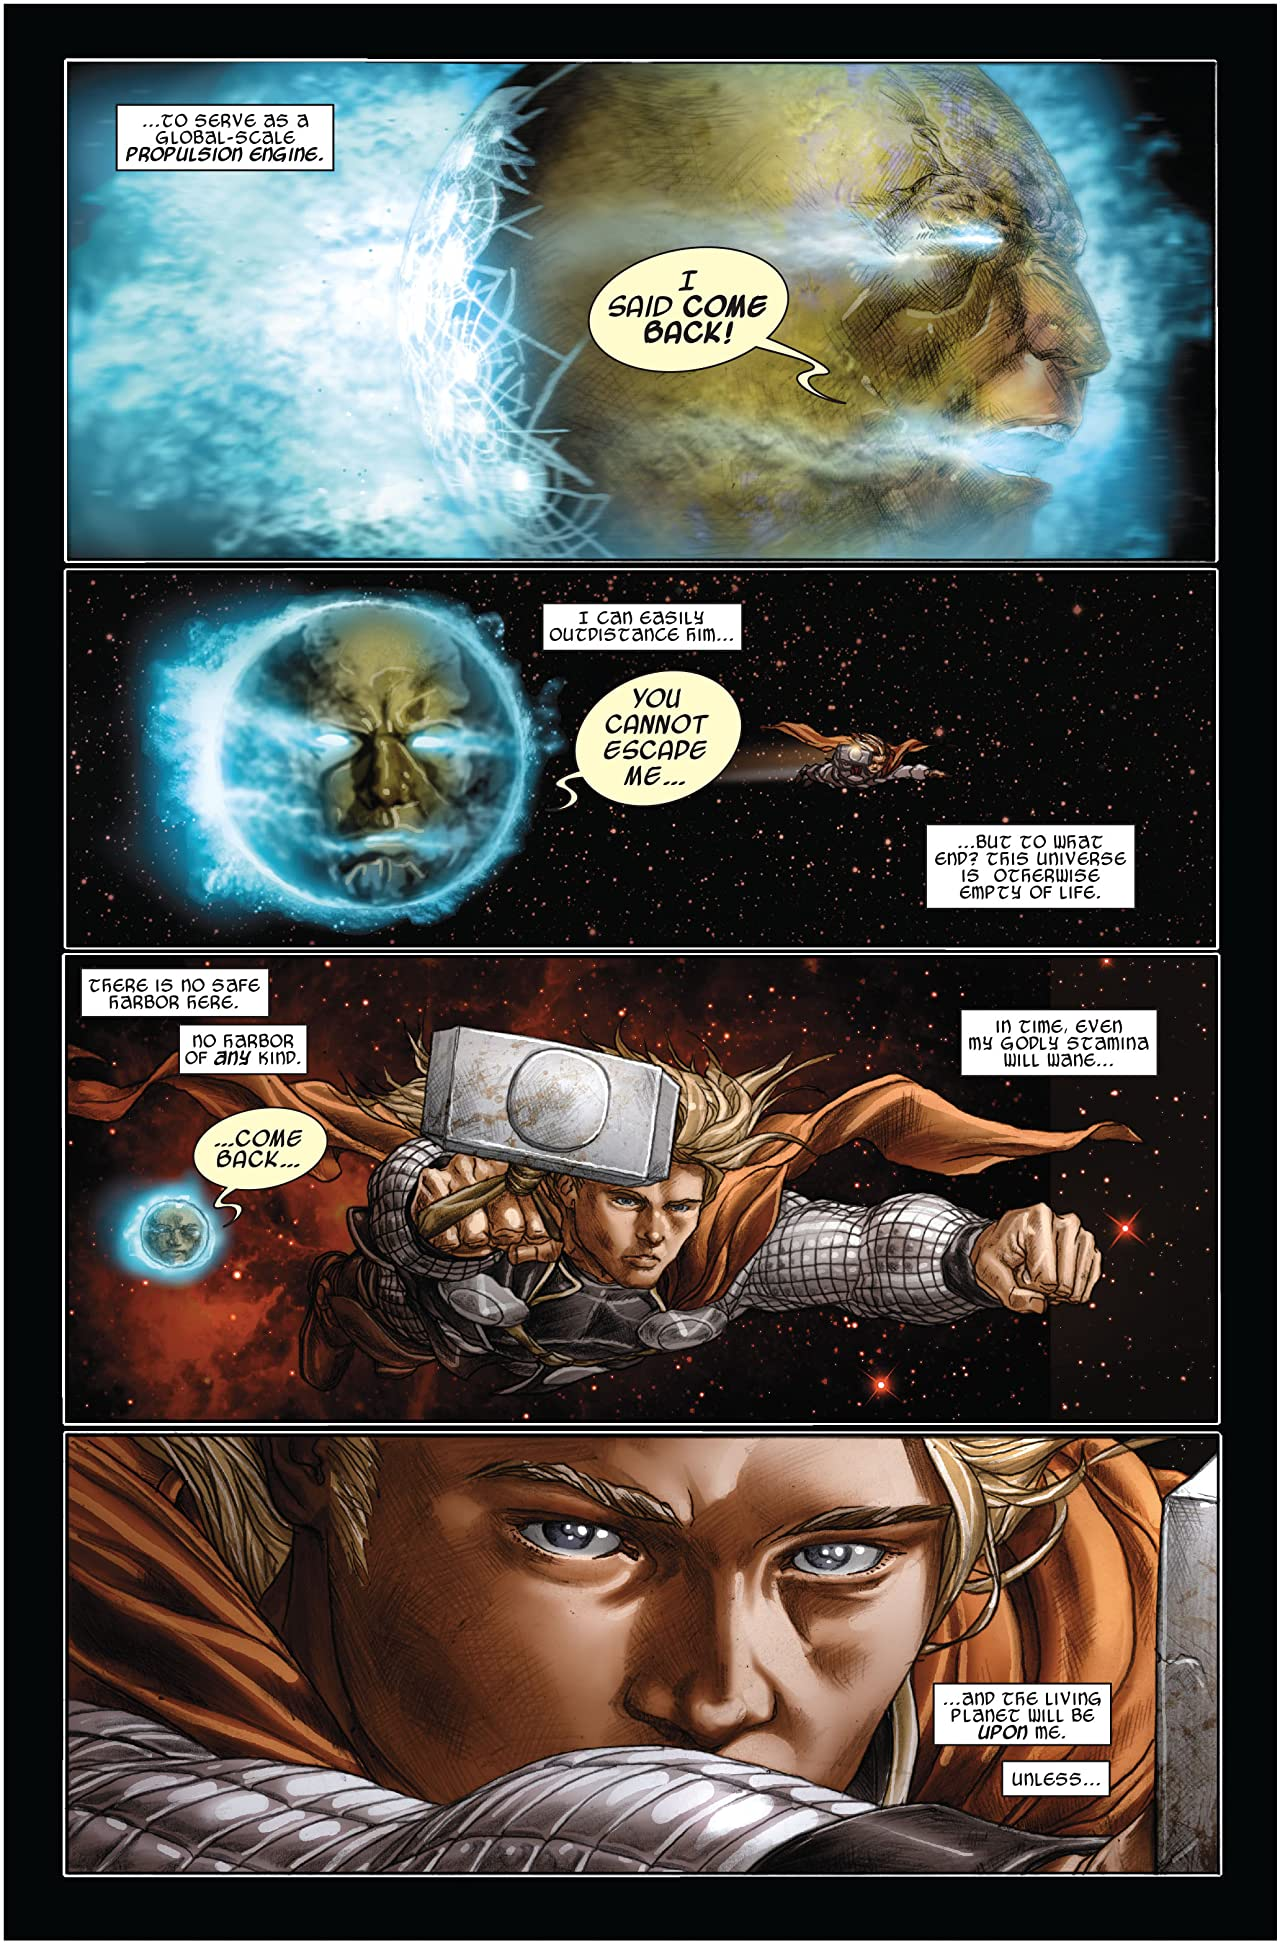 Astonishing Thor #3 (of 5)